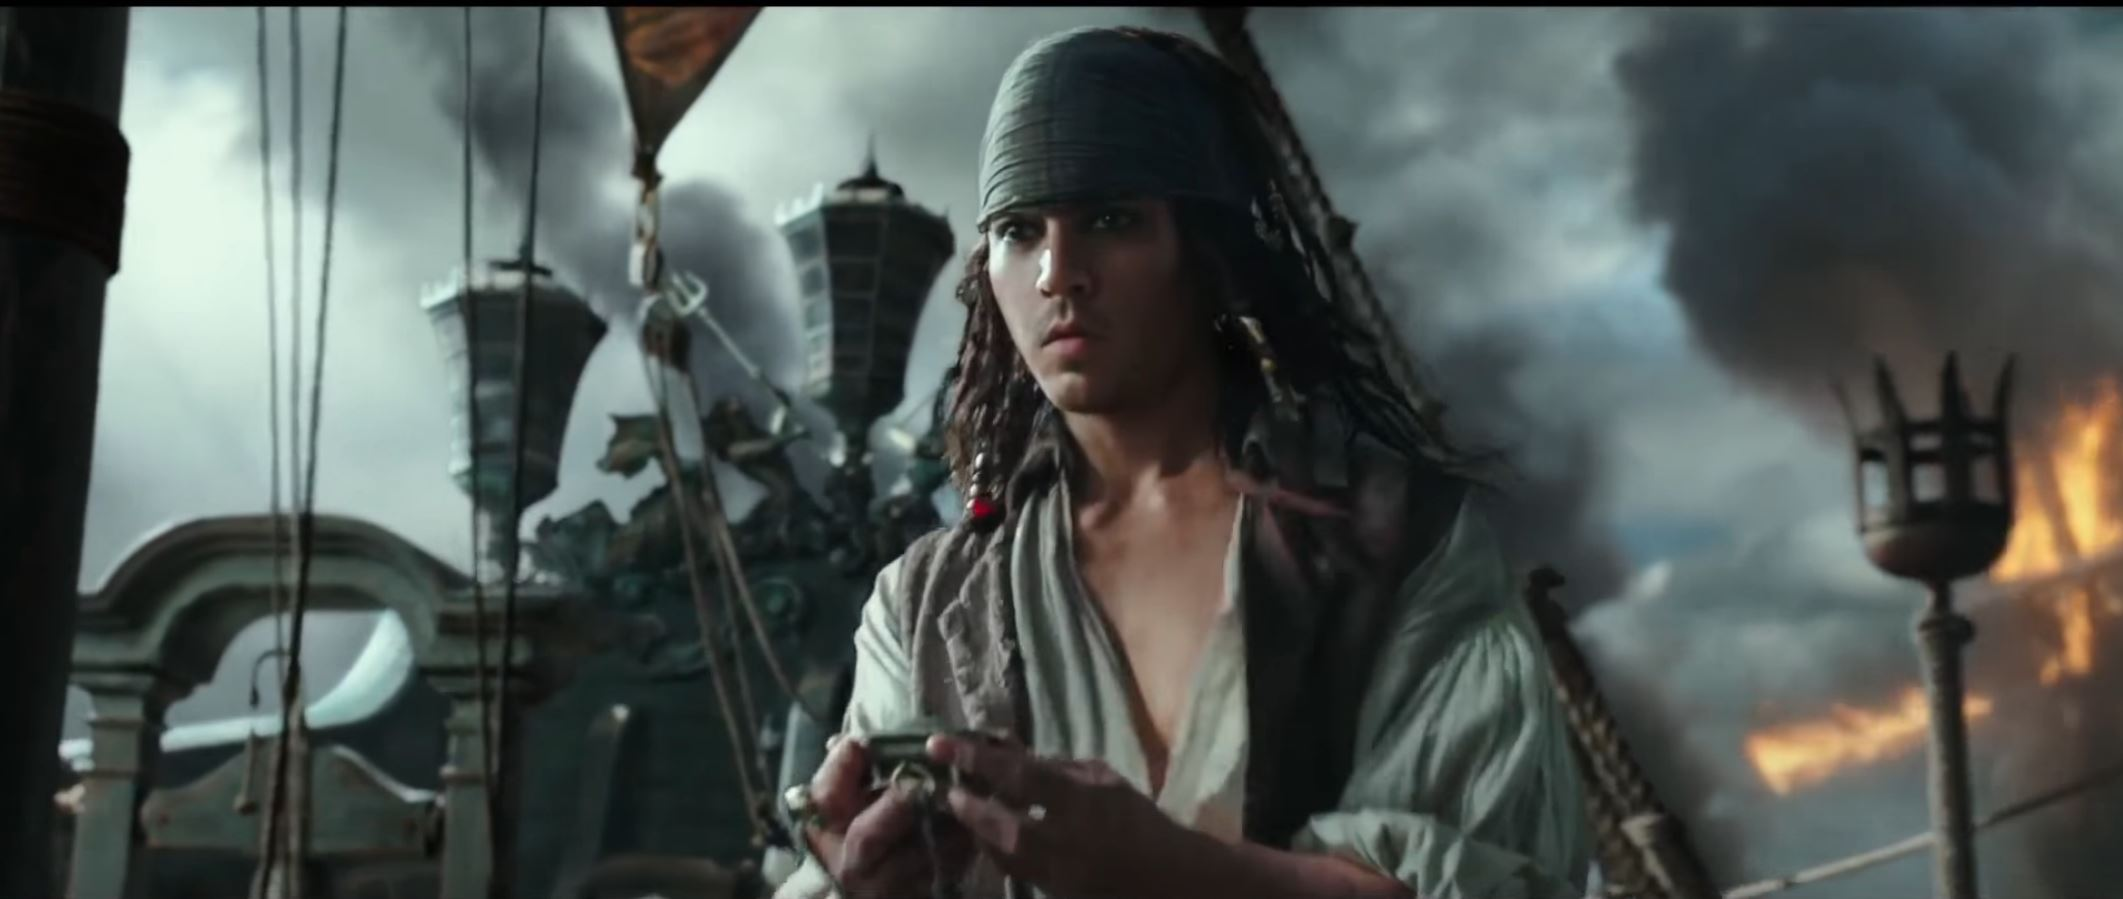 PIRATES OF THE CARIBBEAN 5 Official New Trailer